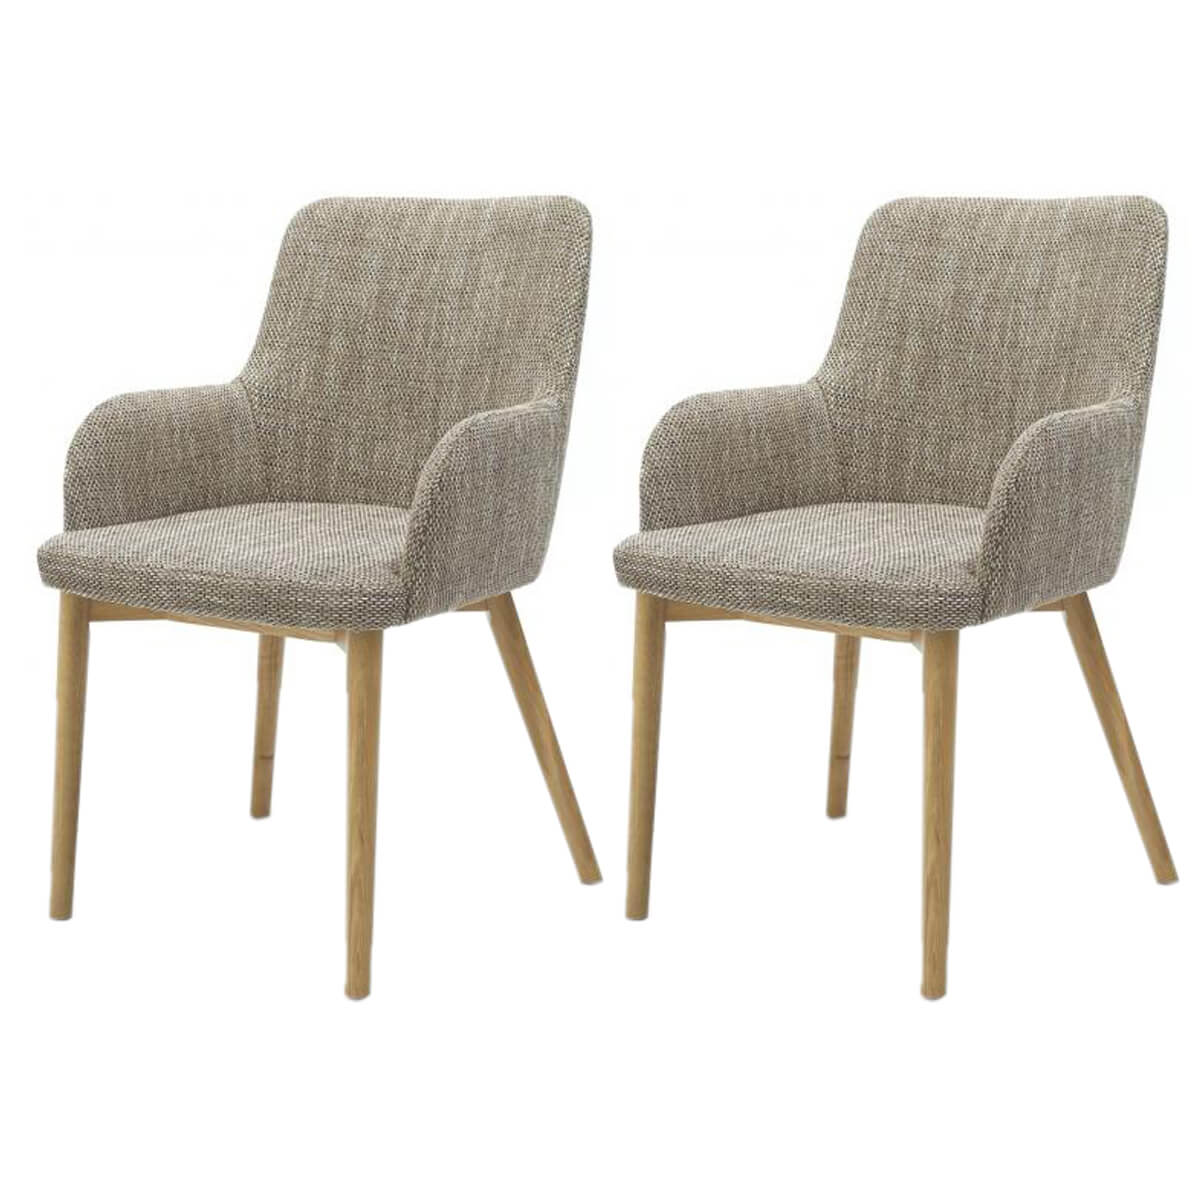 fabric dining chairs uk high chair booster sidcup tweed carver